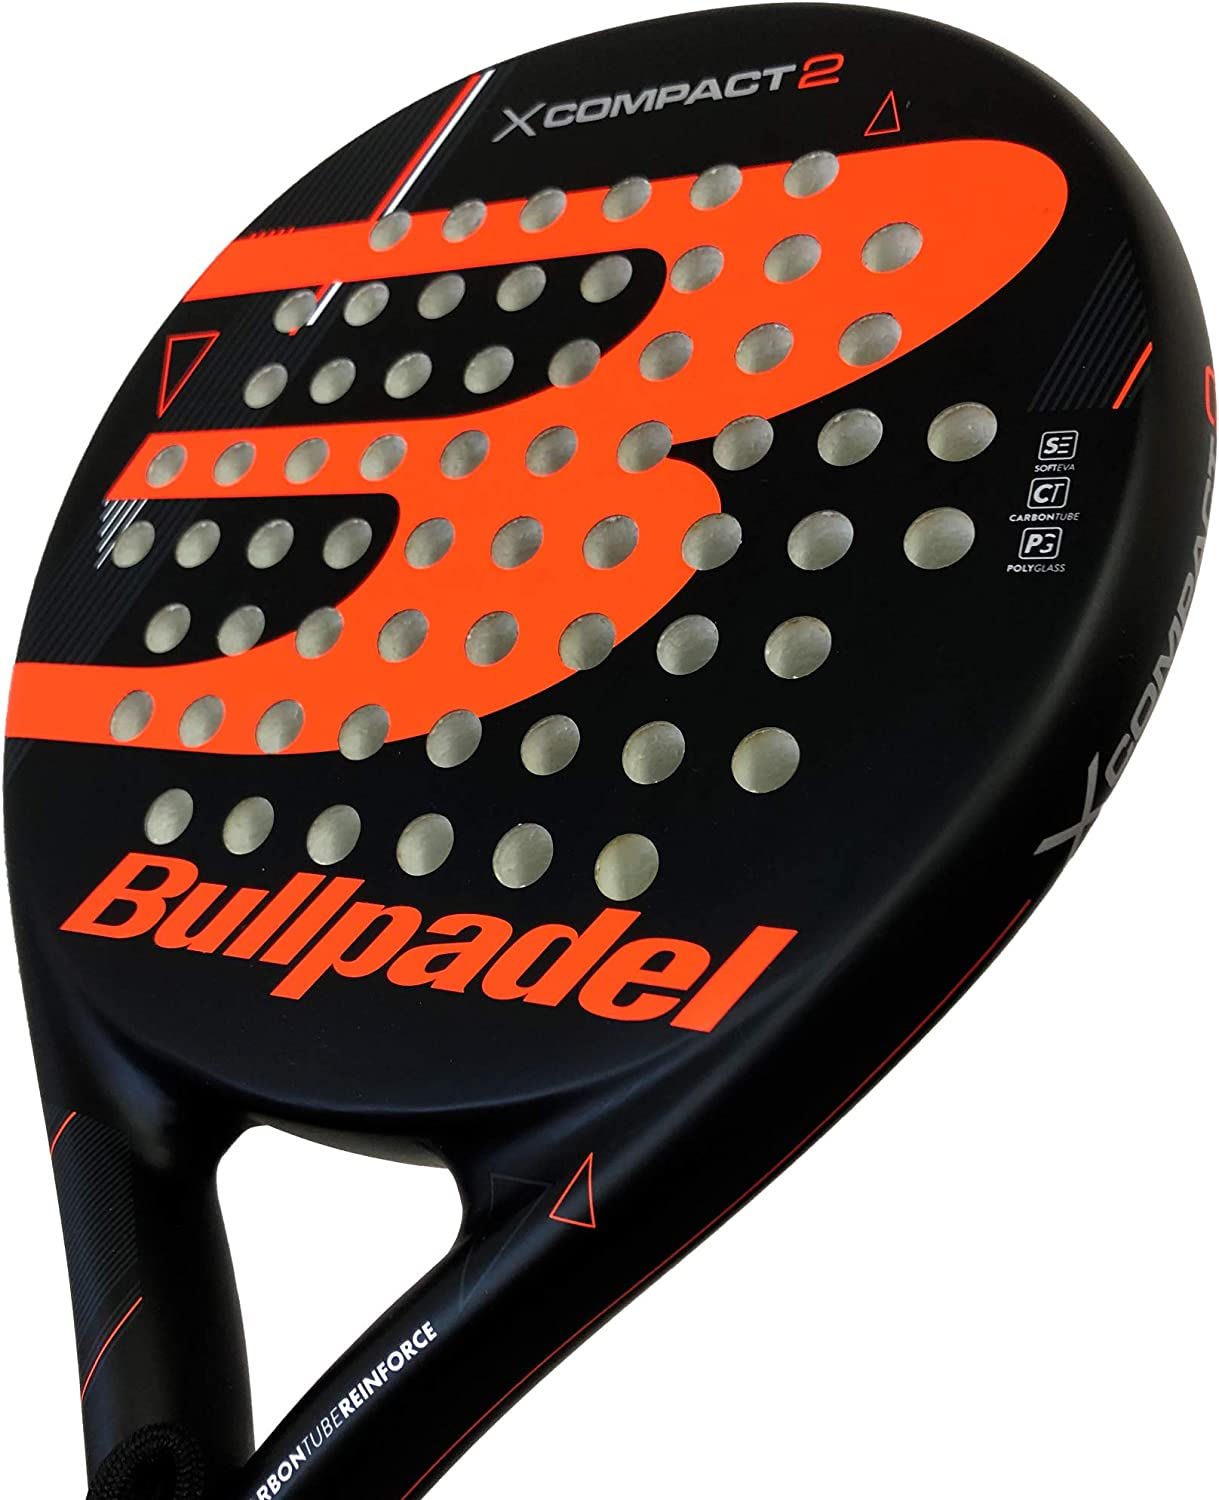 Bull padel X-Compact 2 Orange: Amazon.es: Deportes y aire libre